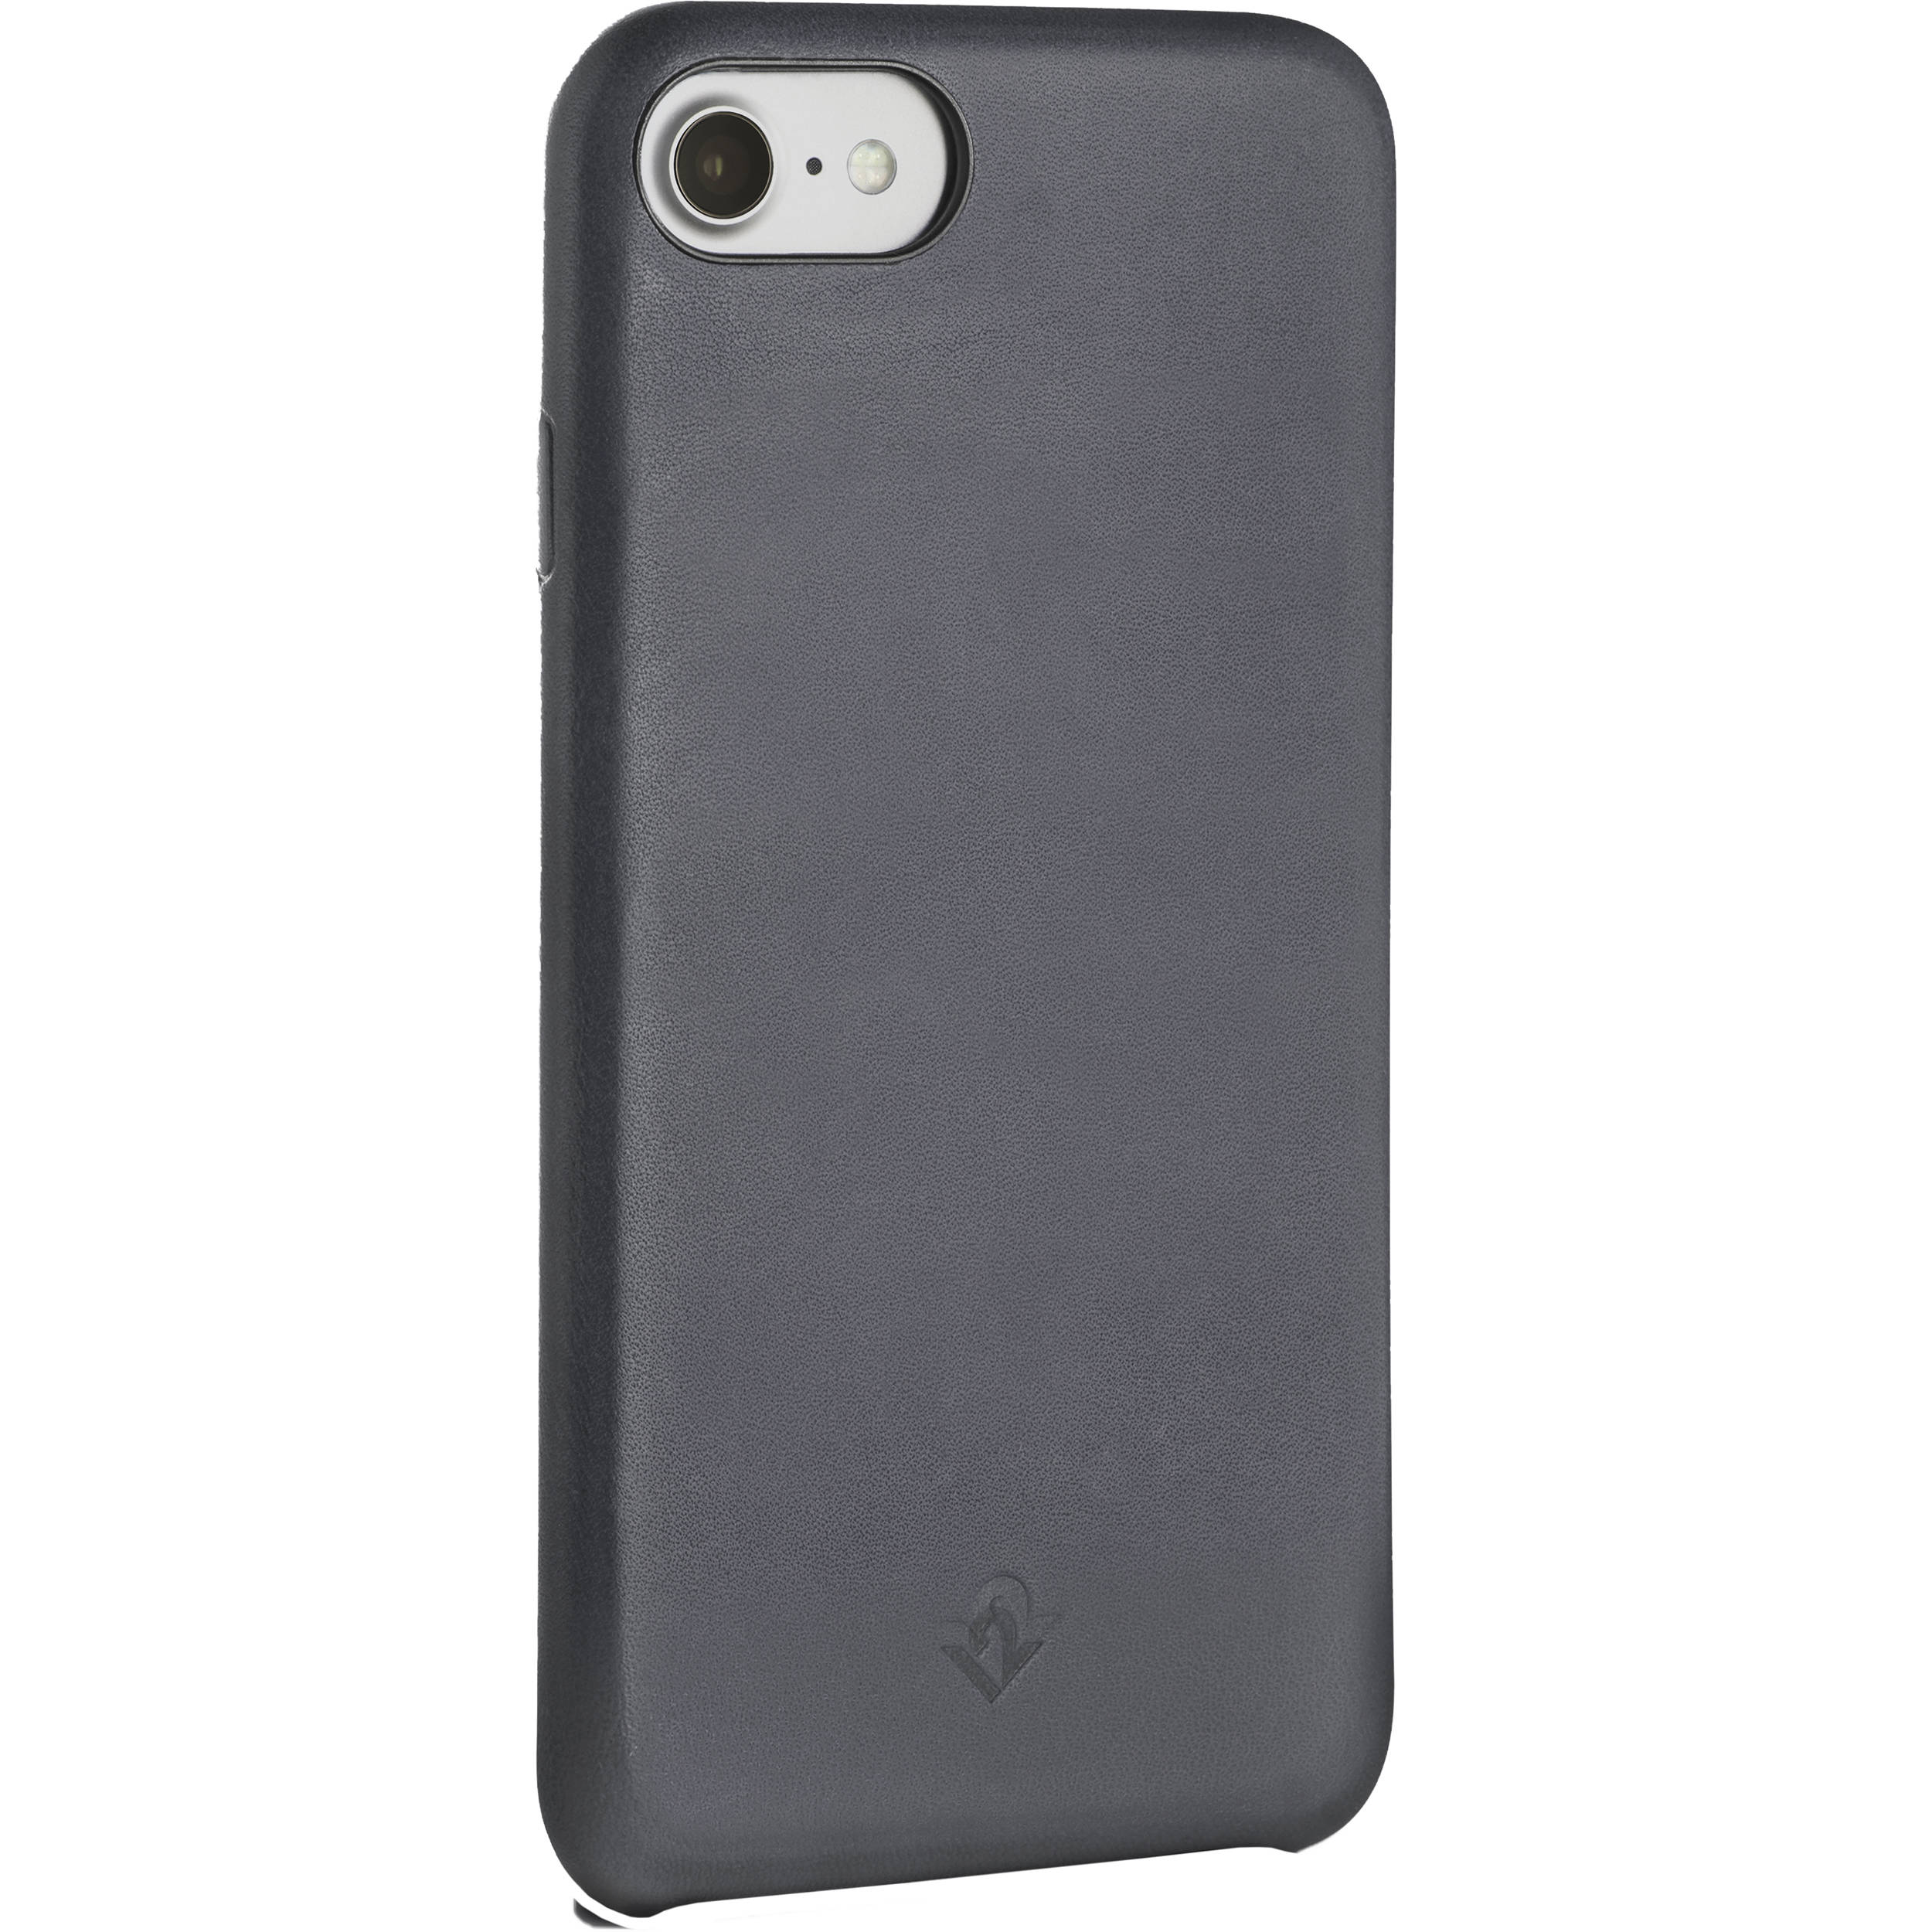 the latest 0e48d 0f0ba Twelve South Relaxed Leather Case for iPhone 6/6s/7/8 (Earl Grey)